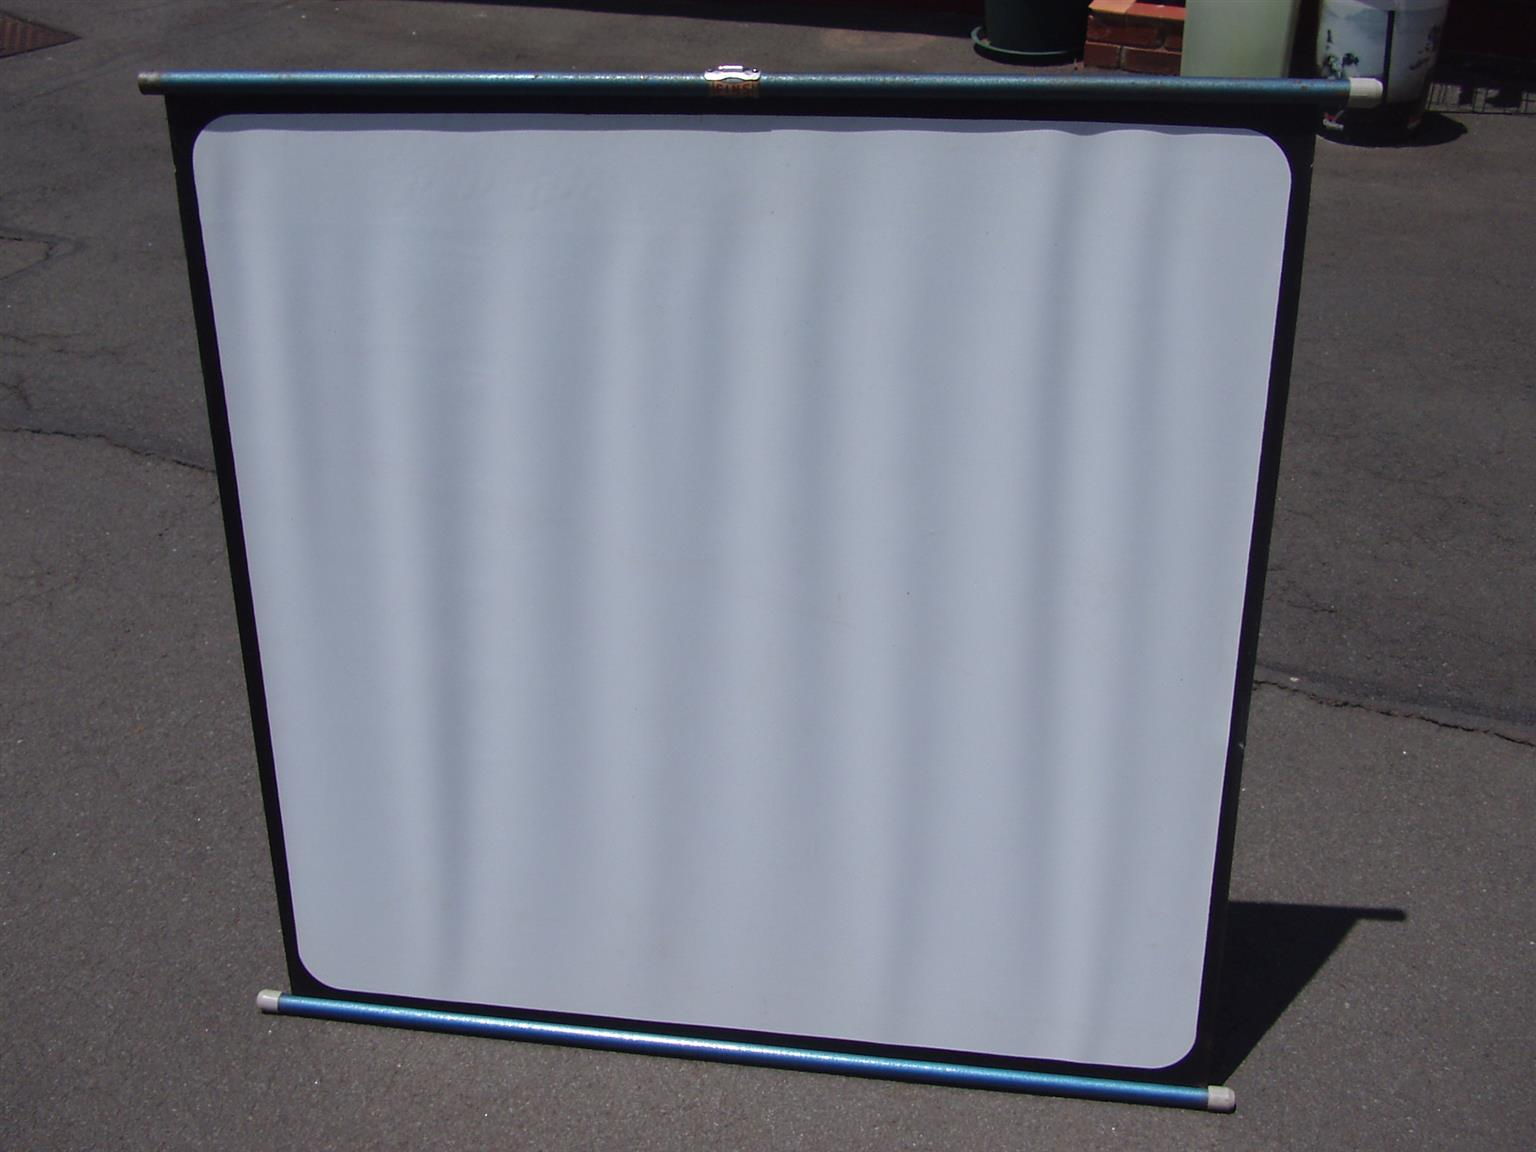 Projector Screen - easy to assemble and use anywhere